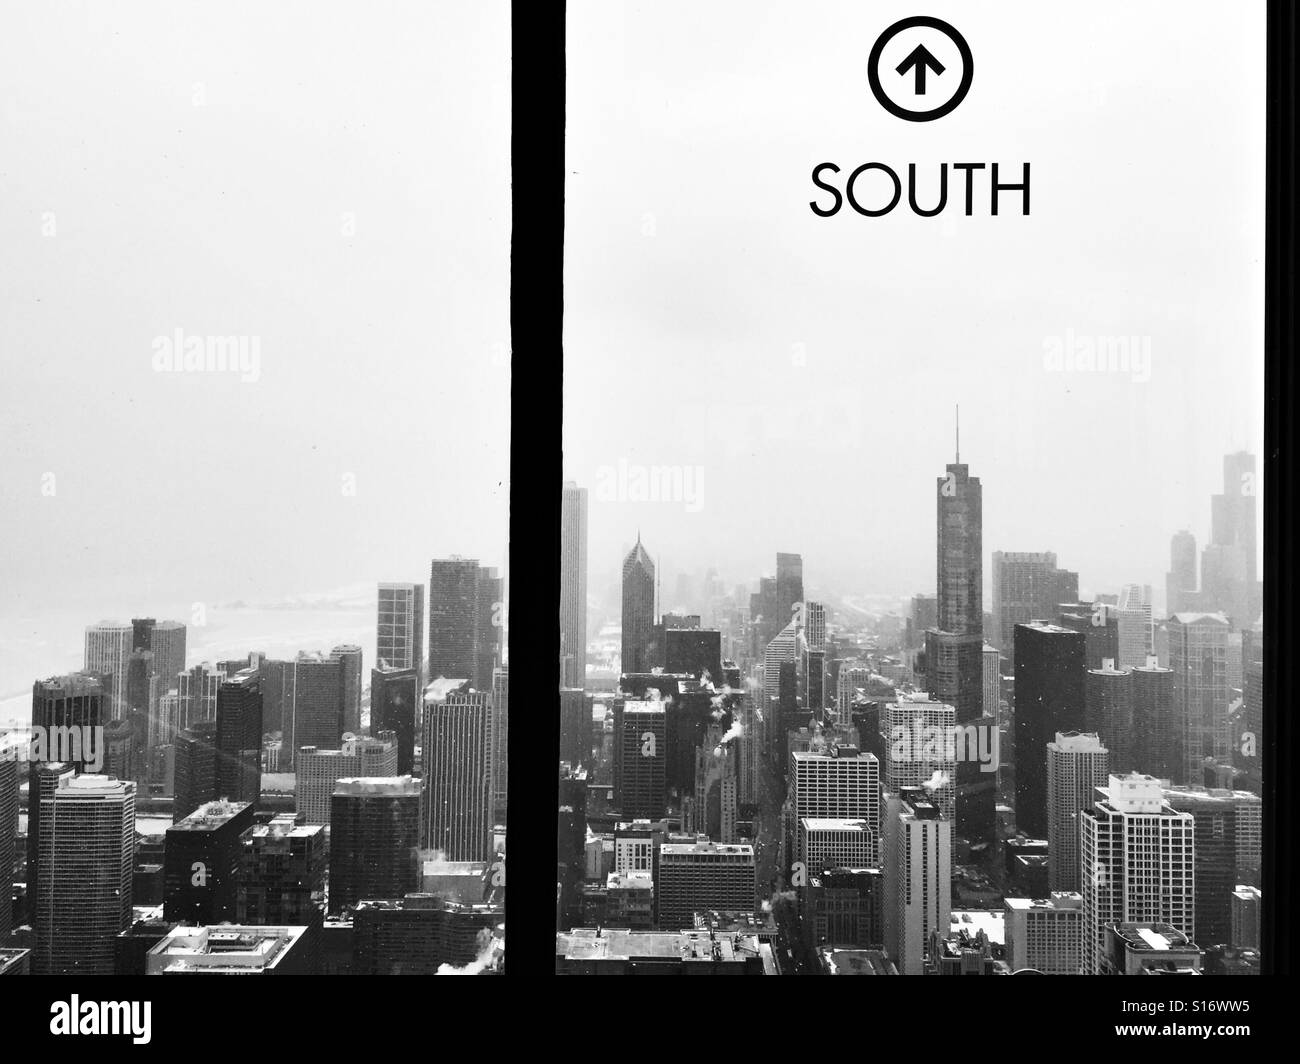 Chicago from the South side. - Stock Image